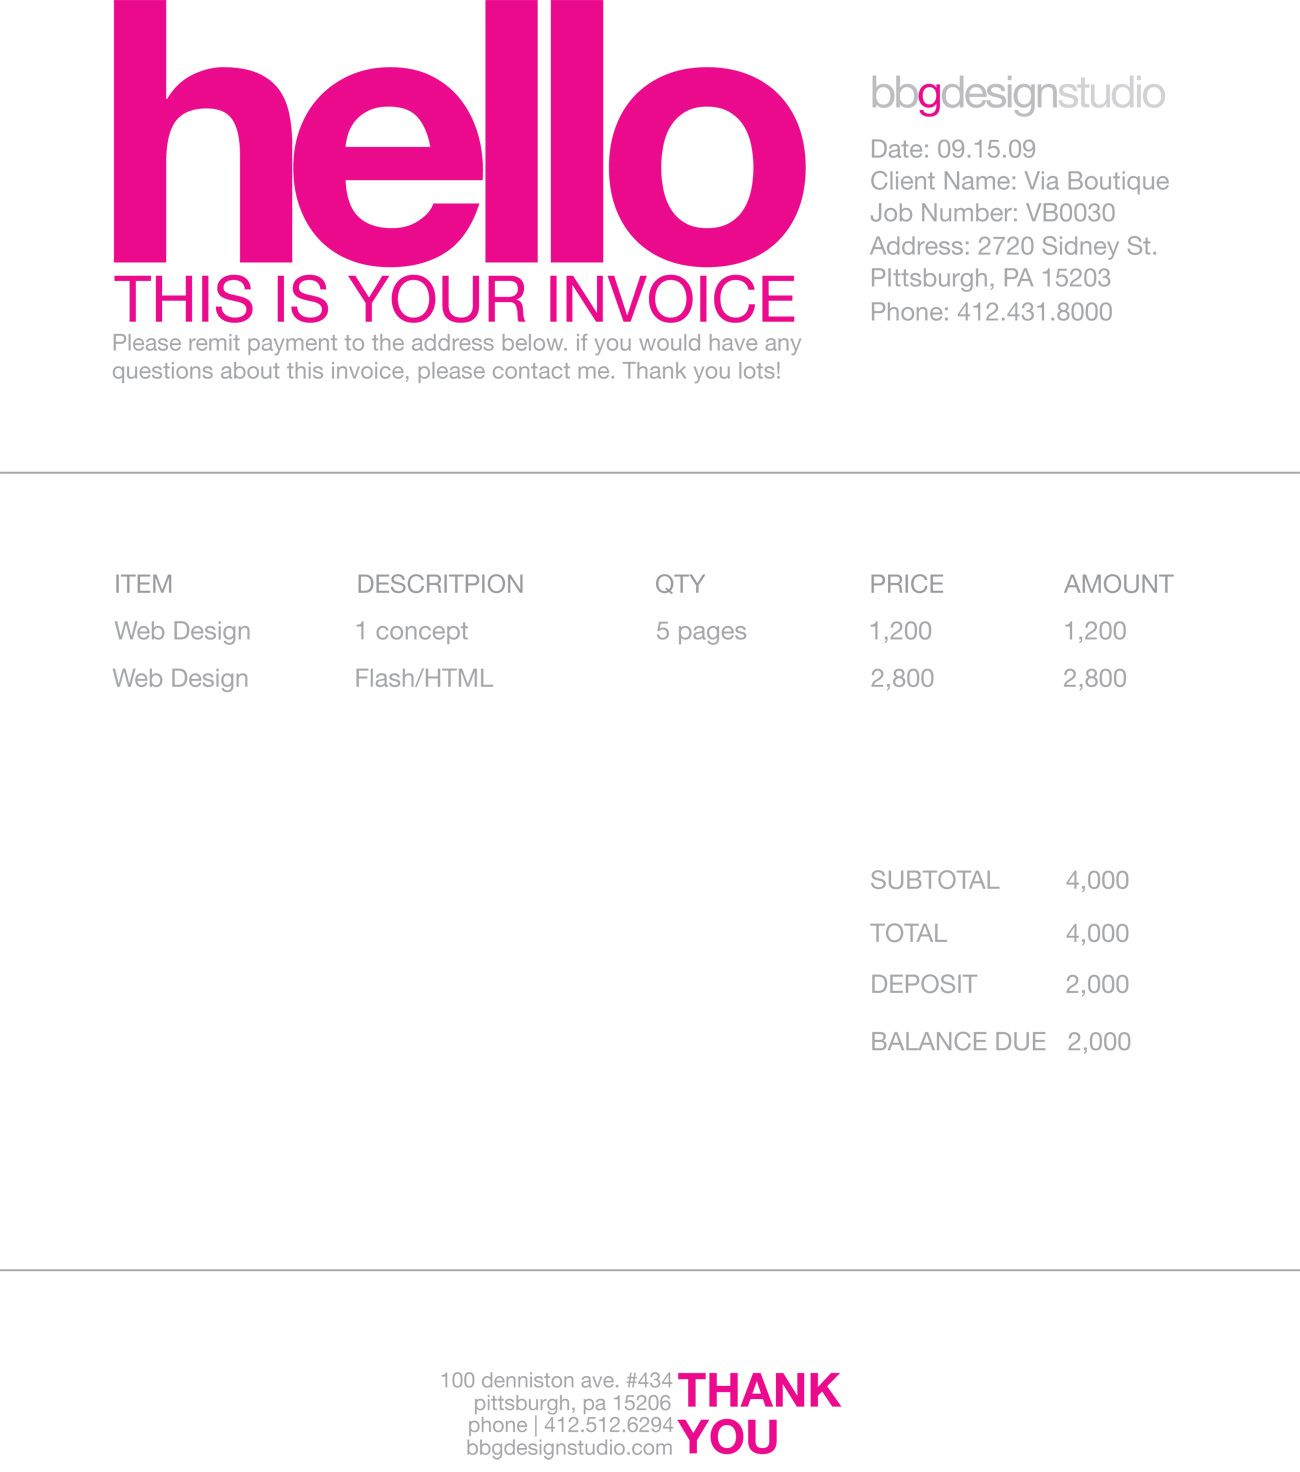 Ebitus  Marvellous  Images About Invoice Design On Pinterest With Glamorous Definition Proforma Invoice Besides Uk Invoice Template Furthermore Abn Invoice With Attractive Paid Invoice Sample Also Mercedes Invoice In Addition Payment Of The Invoice And Nomor Invoice As Well As Invoice Receipt Sample Additionally Invoice Copy Format From Pinterestcom With Ebitus  Glamorous  Images About Invoice Design On Pinterest With Attractive Definition Proforma Invoice Besides Uk Invoice Template Furthermore Abn Invoice And Marvellous Paid Invoice Sample Also Mercedes Invoice In Addition Payment Of The Invoice From Pinterestcom